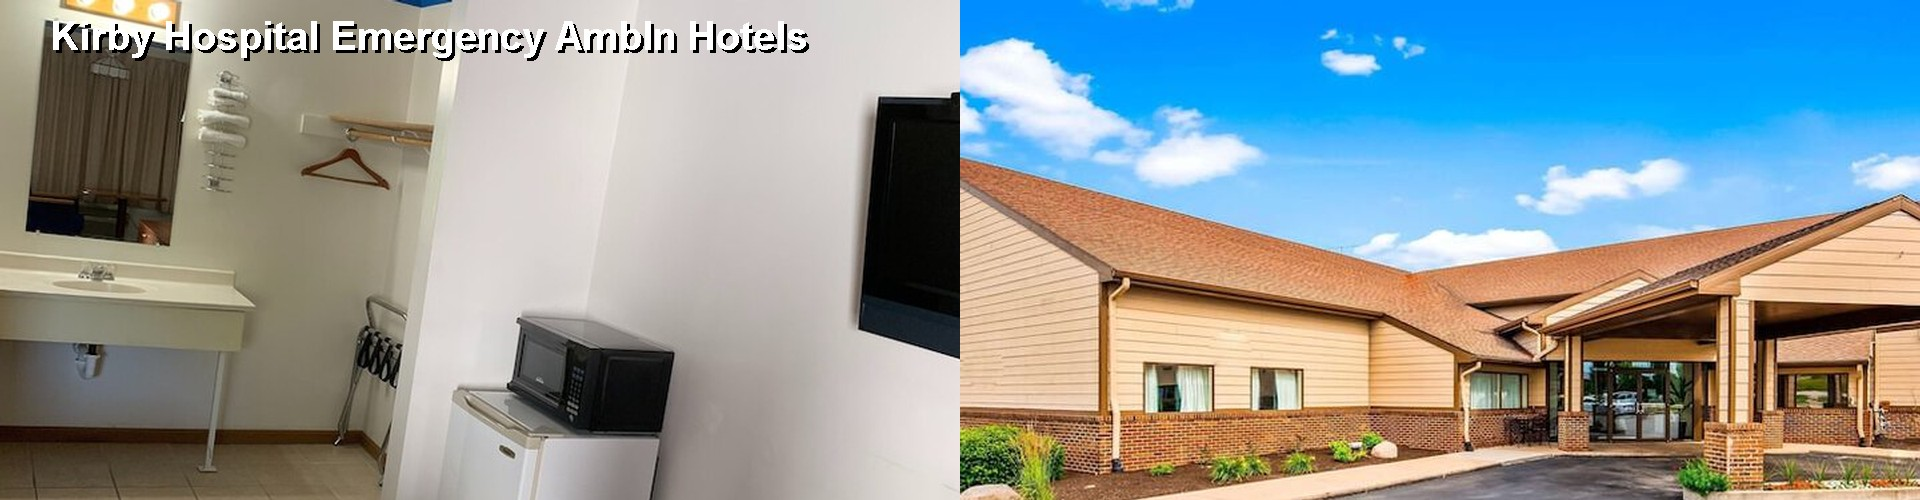 5 Best Hotels near Kirby Hospital Emergency Ambln